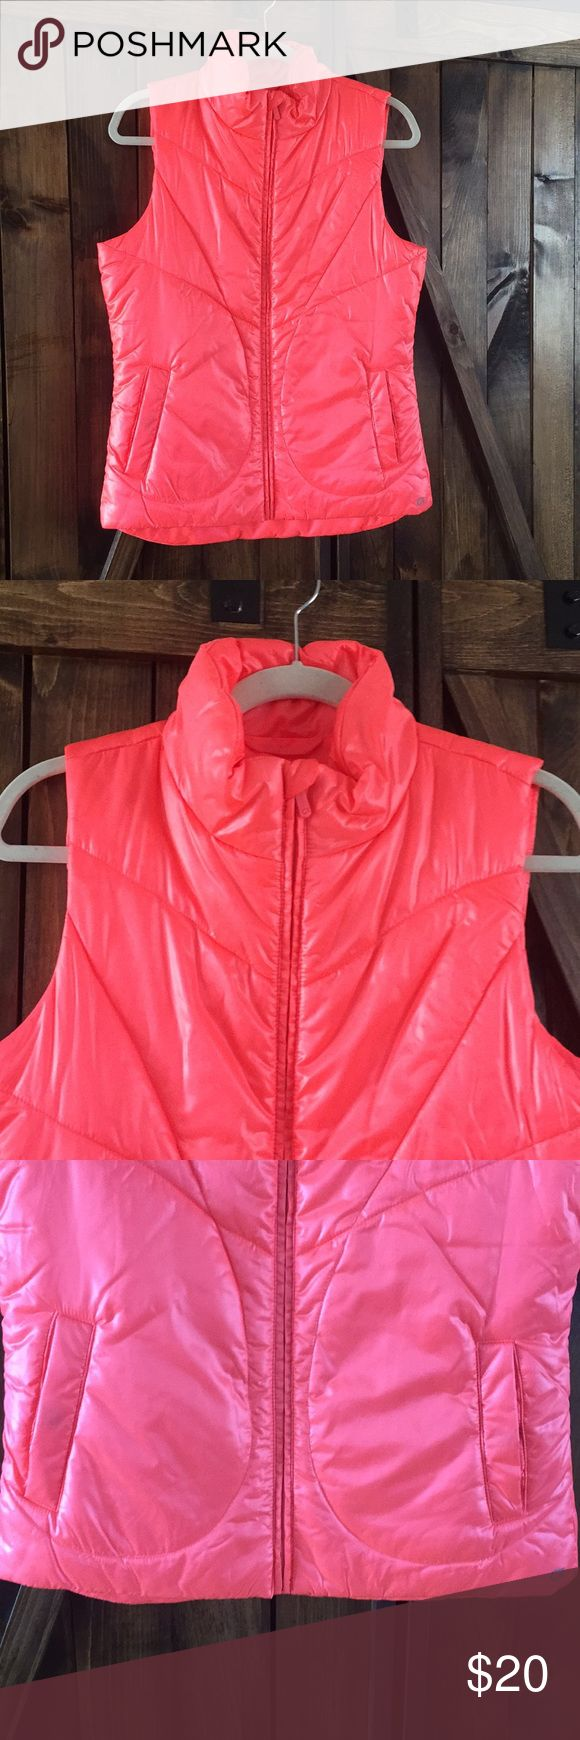 Ladies Small GAP FIT Winter VEST This is a great looking vest by GAPFIT. It is a size small. It is a great orange/pink color. It has a zipper down the front with two pockets. It is in excellent condition with no stains or holes. GAP Jackets & Coats Vests